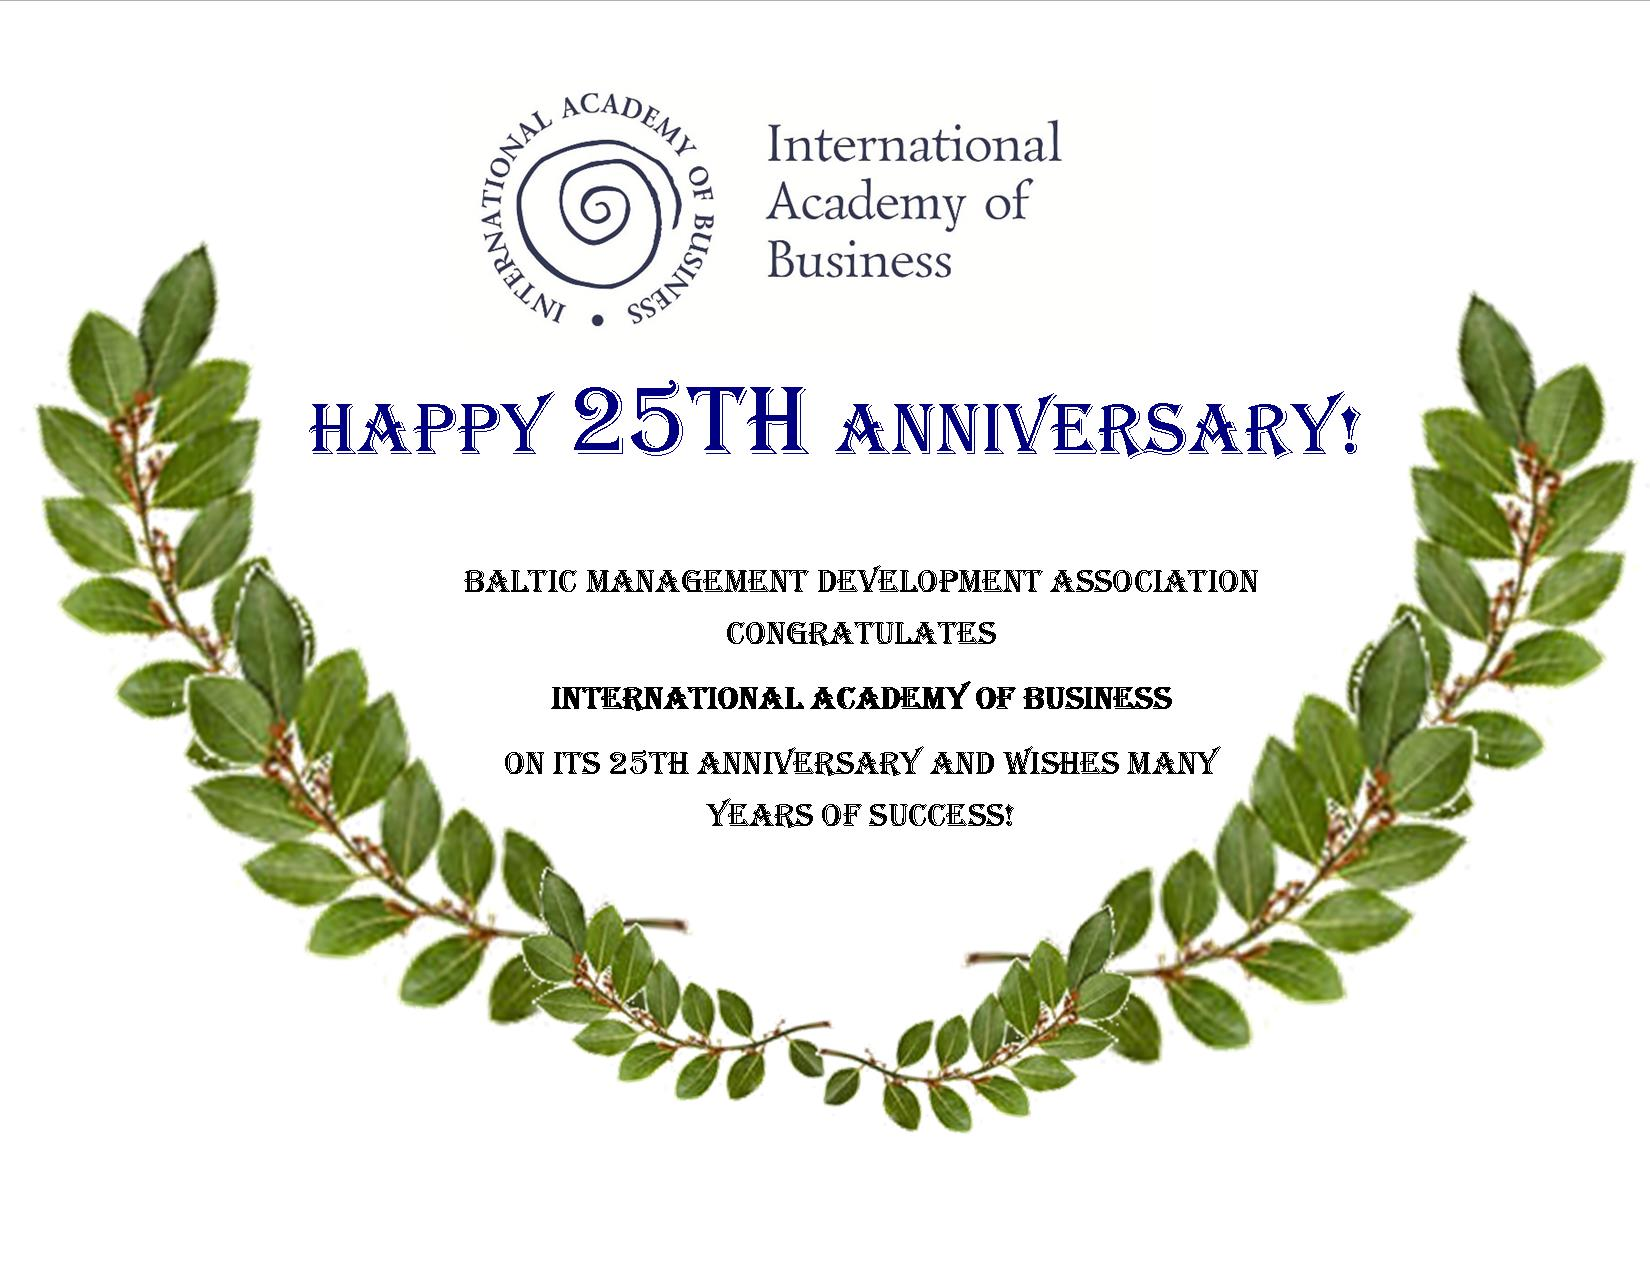 congratulations to international academy of business on its 25th